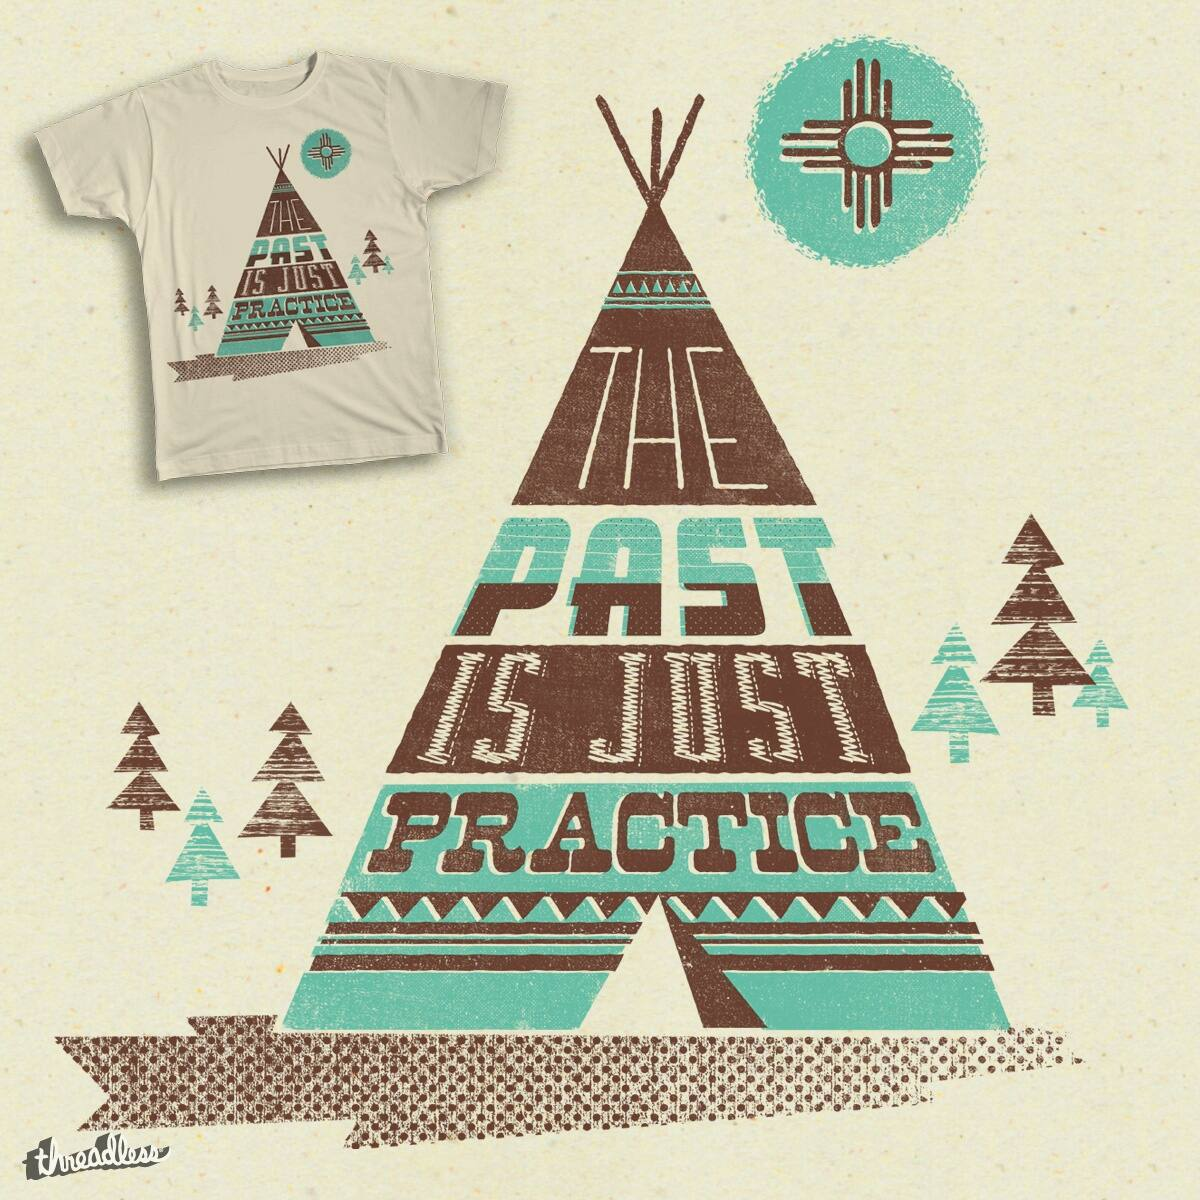 the Past is just Practice by expomonster on Threadless